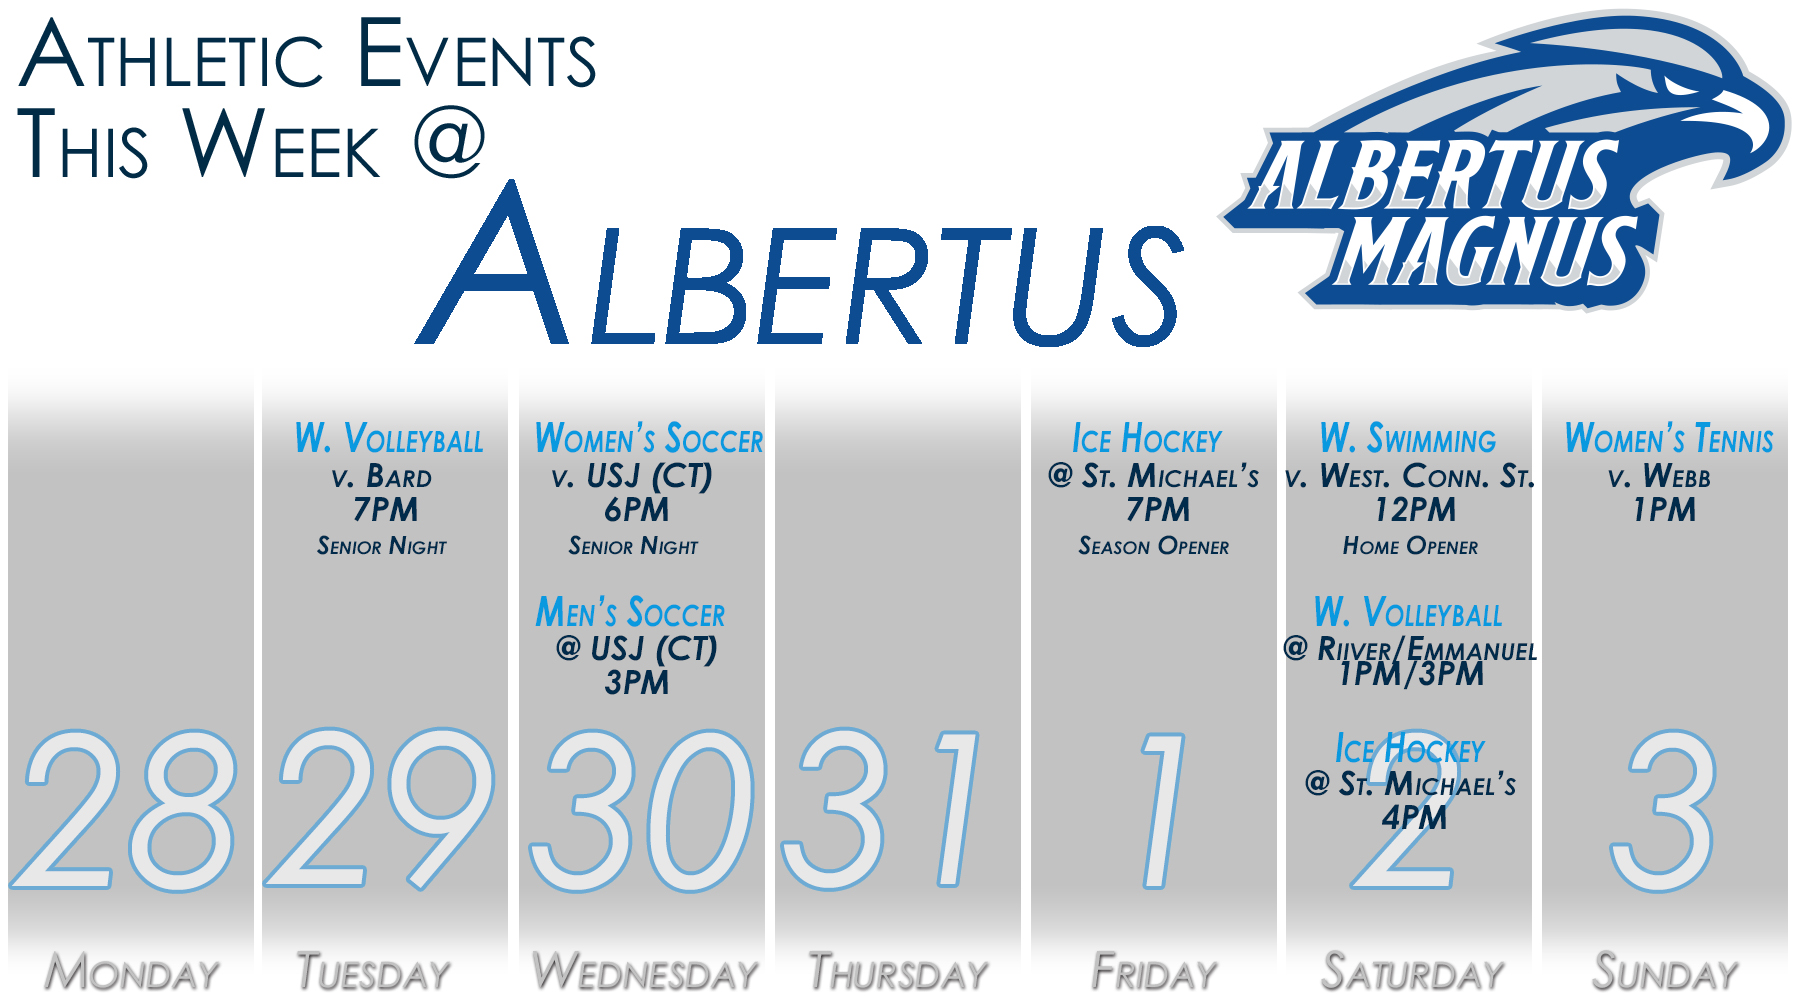 Albertus Magnus Athletics - Weekly Schedule (Oct. 28 - Nov. 3)